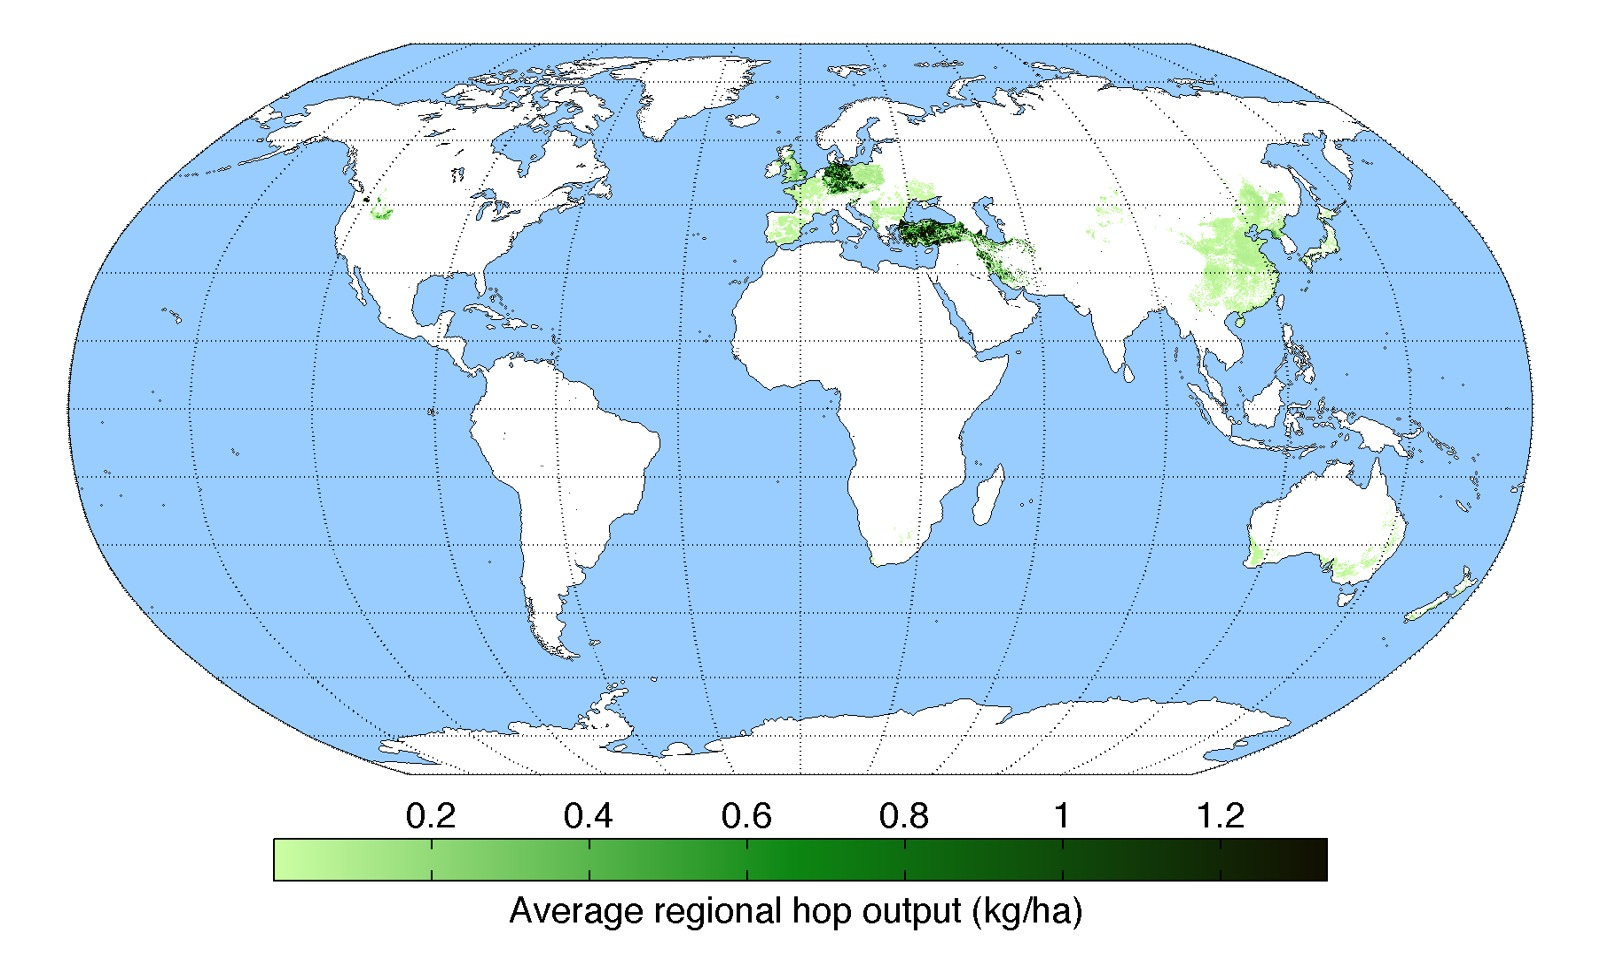 Map of common hop